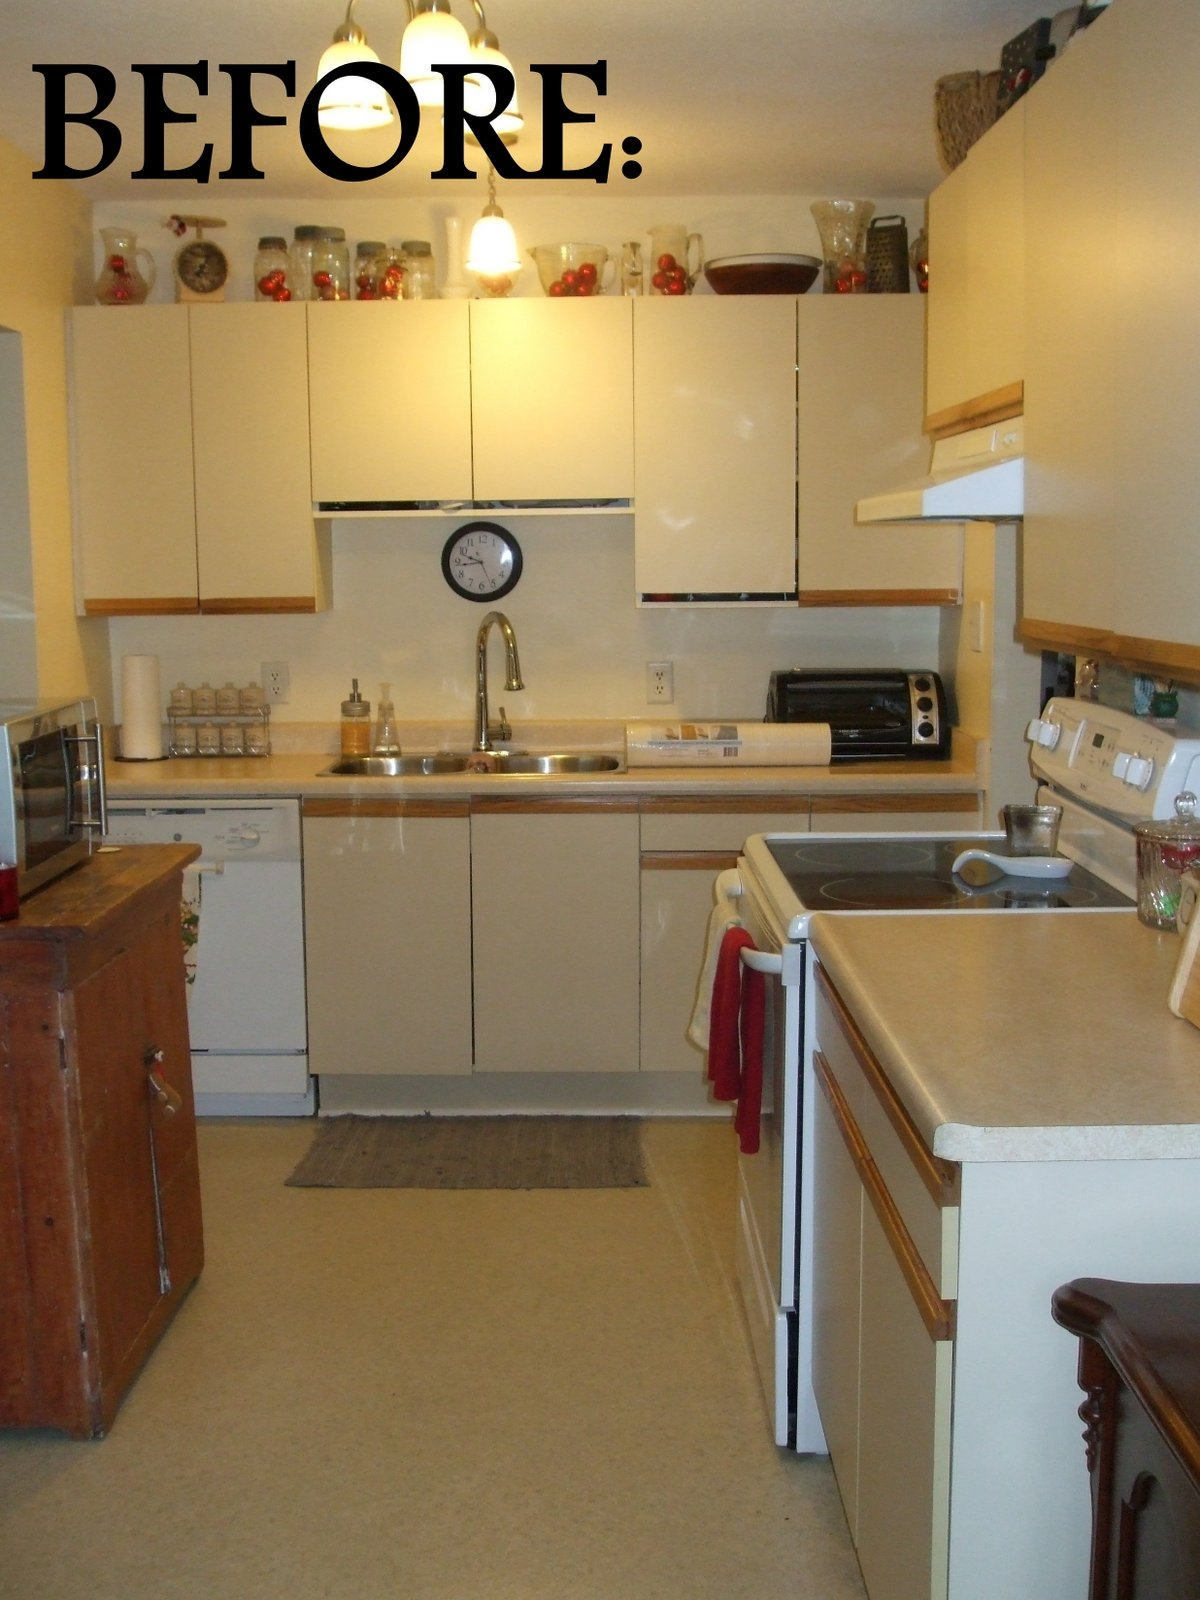 1980 Kitchen Cabinets Makeover